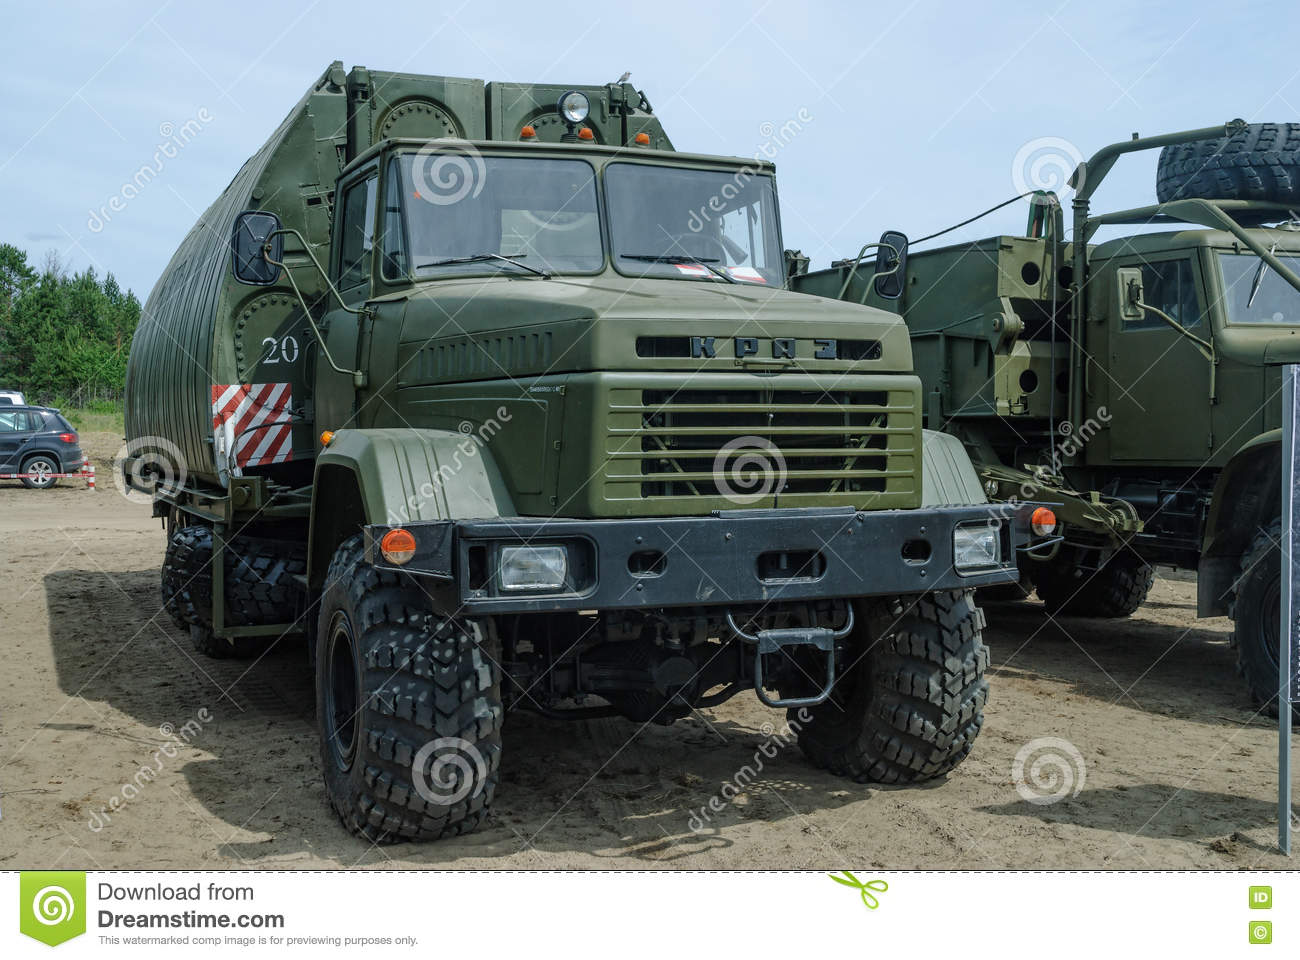 Pontoon equipage PP-91 on the basis of KRAZ